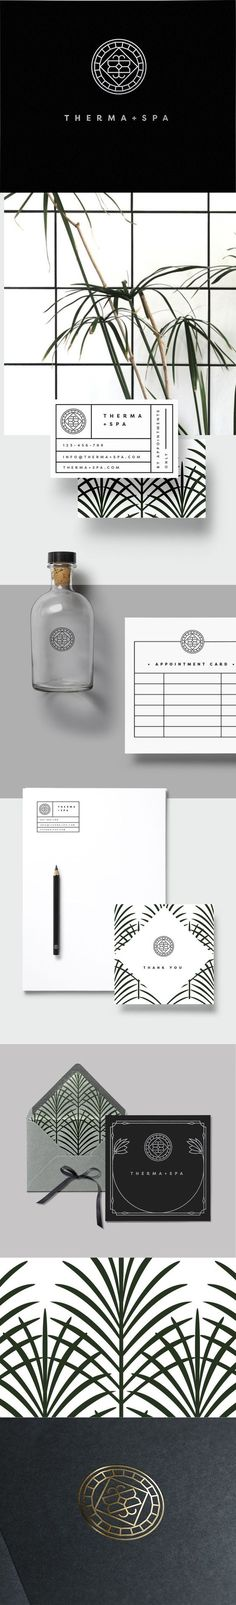 Therma + Spa Branding by Loolaadesigns | Fivestar Branding Agency – Design and Branding Agency & Curated Inspiration Gallery